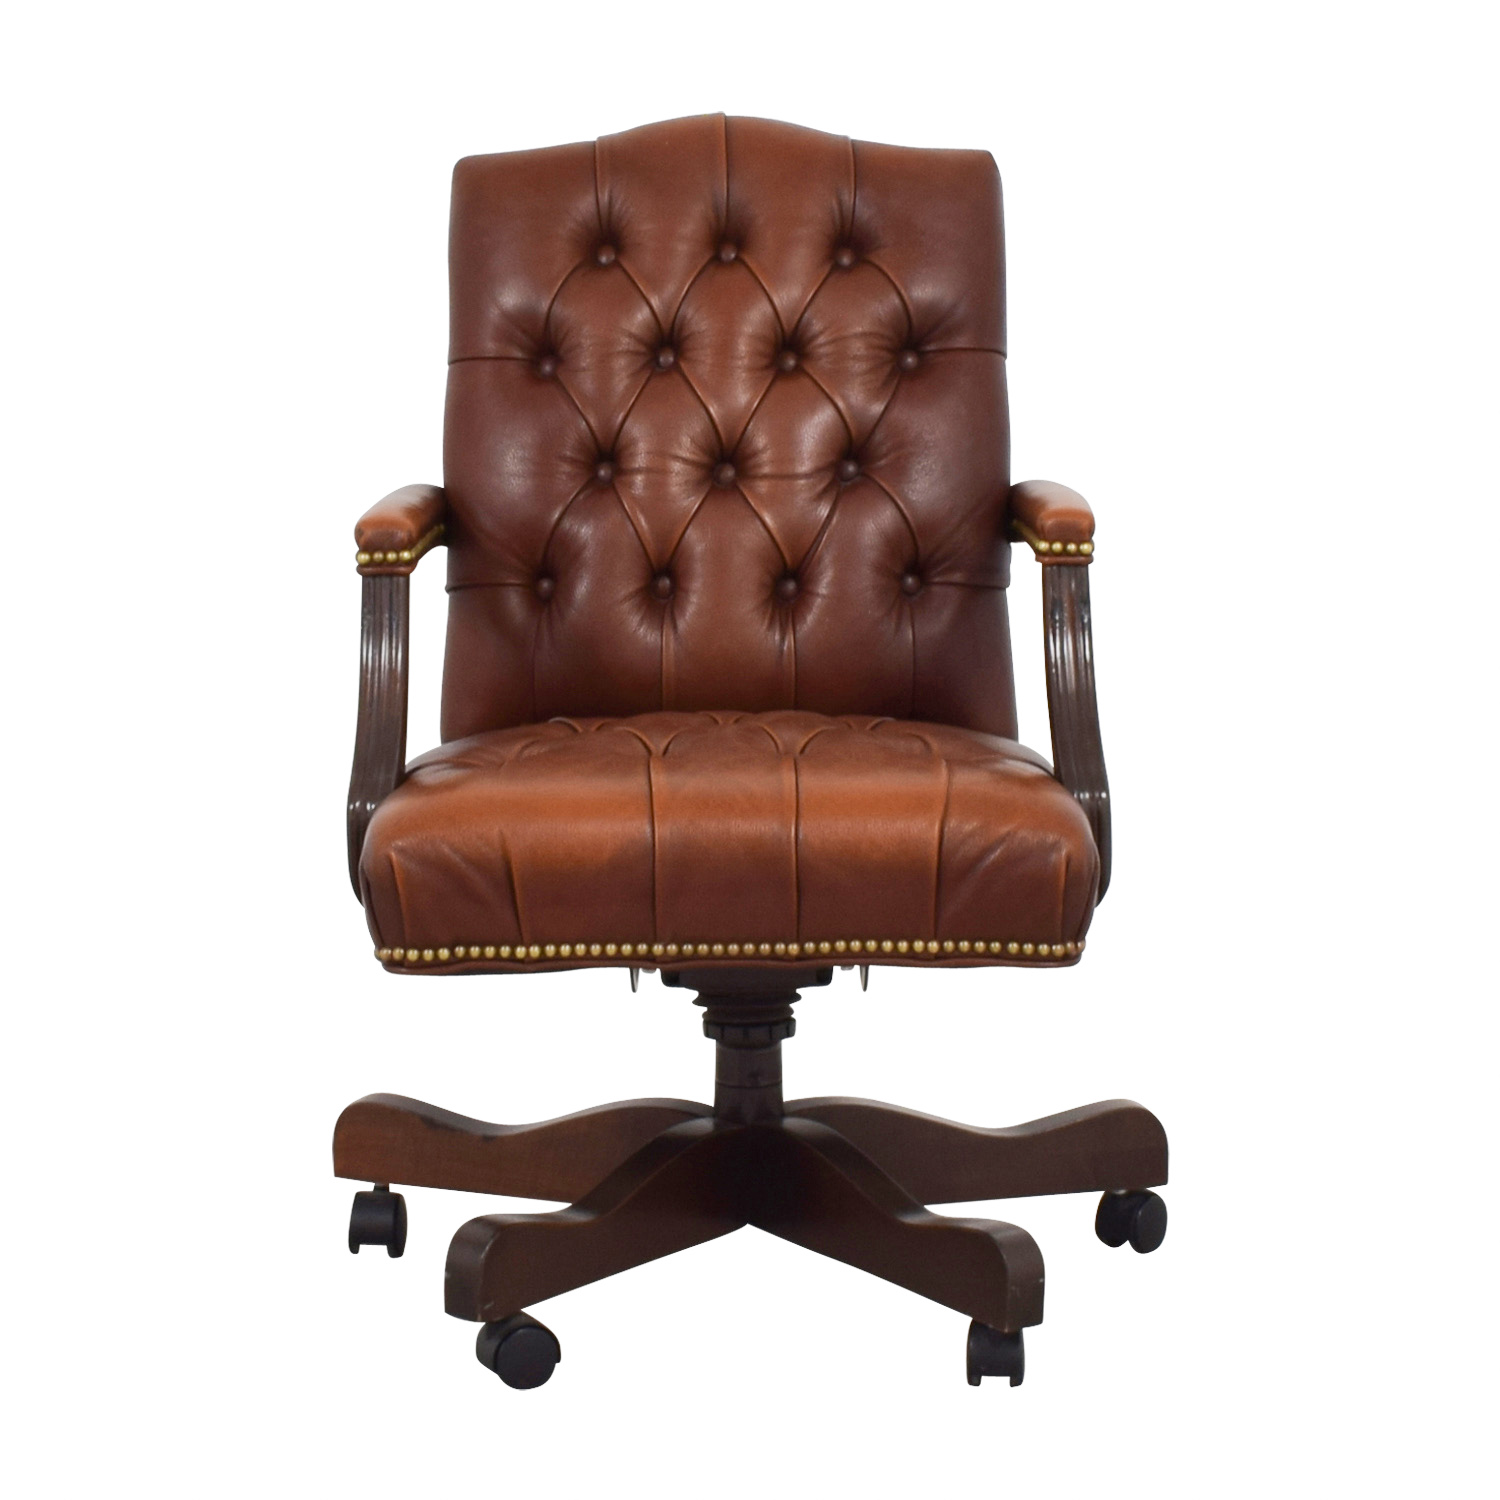 Ethan Allen Brown Leather Desk Chair Home Office Chairs Ethan Allen Office  Furniture F4